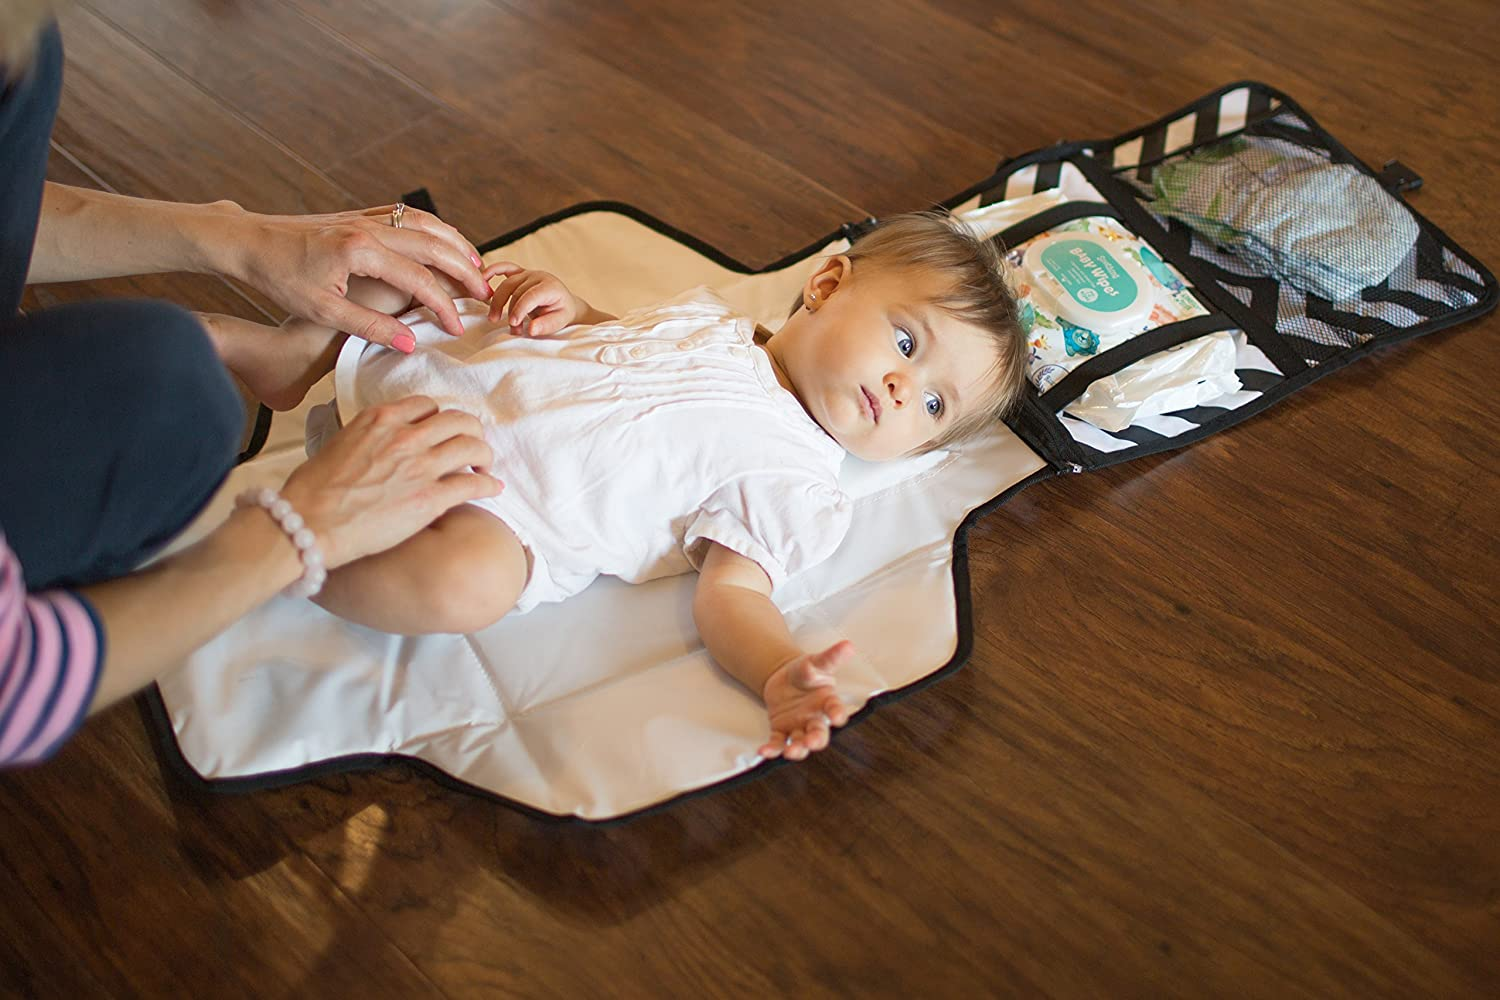 Amazon.com : Travel Diaper Changing Pad for Babies - Foldable Mat ...